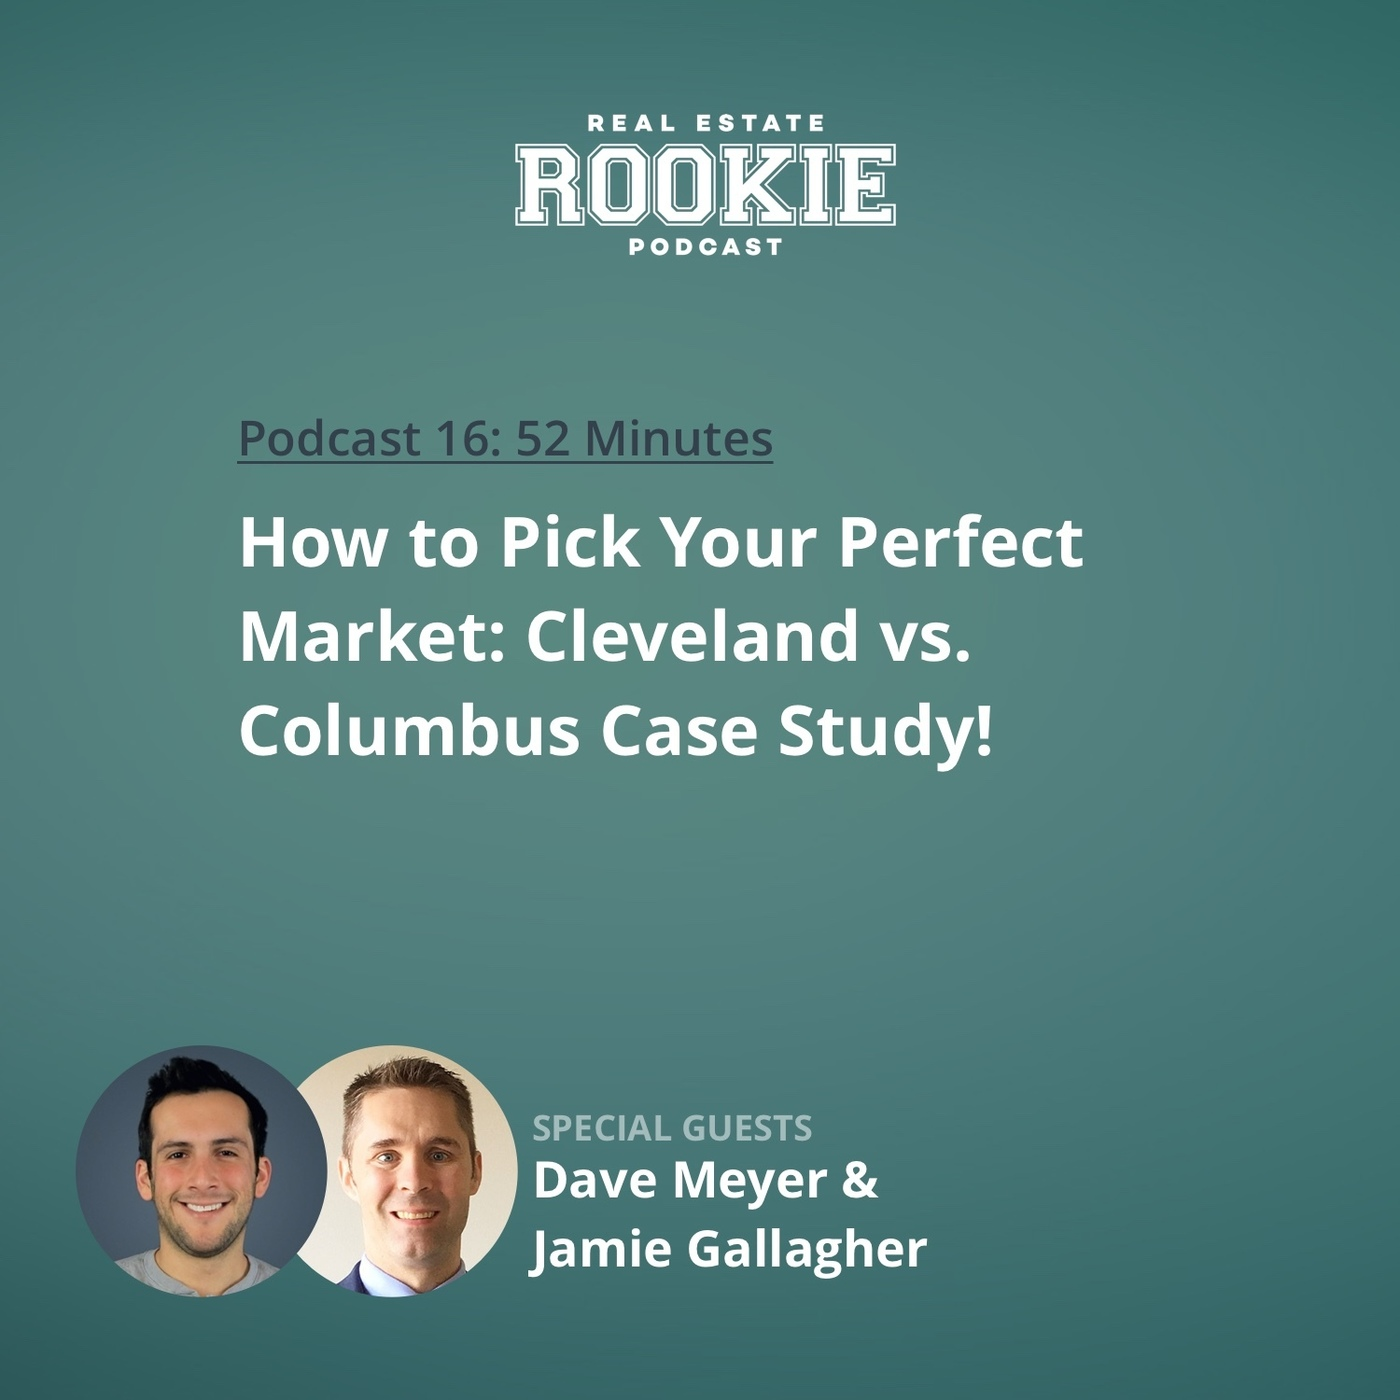 How to Pick Your Perfect Market: Cleveland vs. Columbus Case Study! with Dave Meyer and Jamie Gallagher